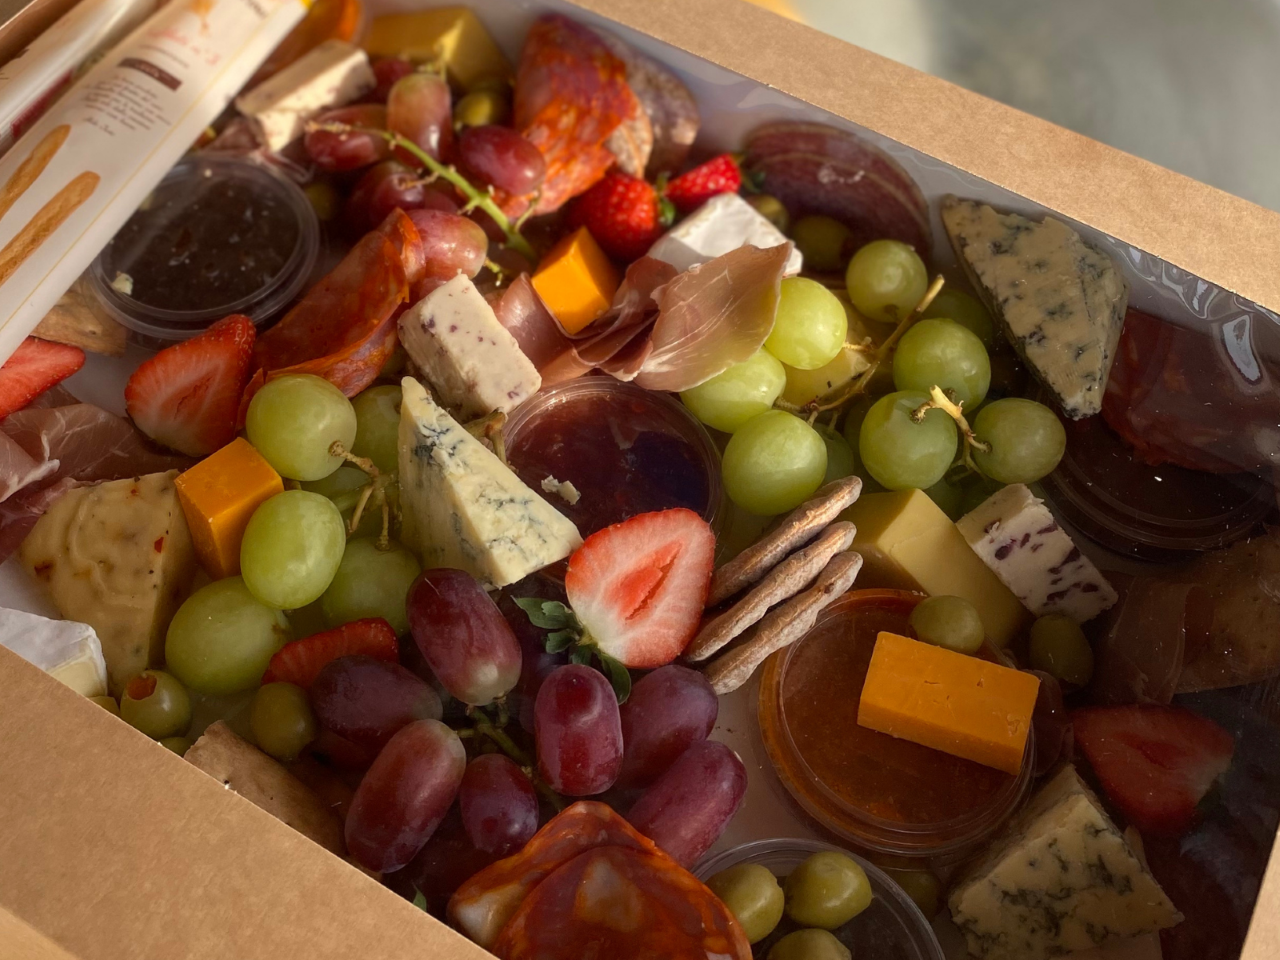 Large Cheese & Charcuterie Platter